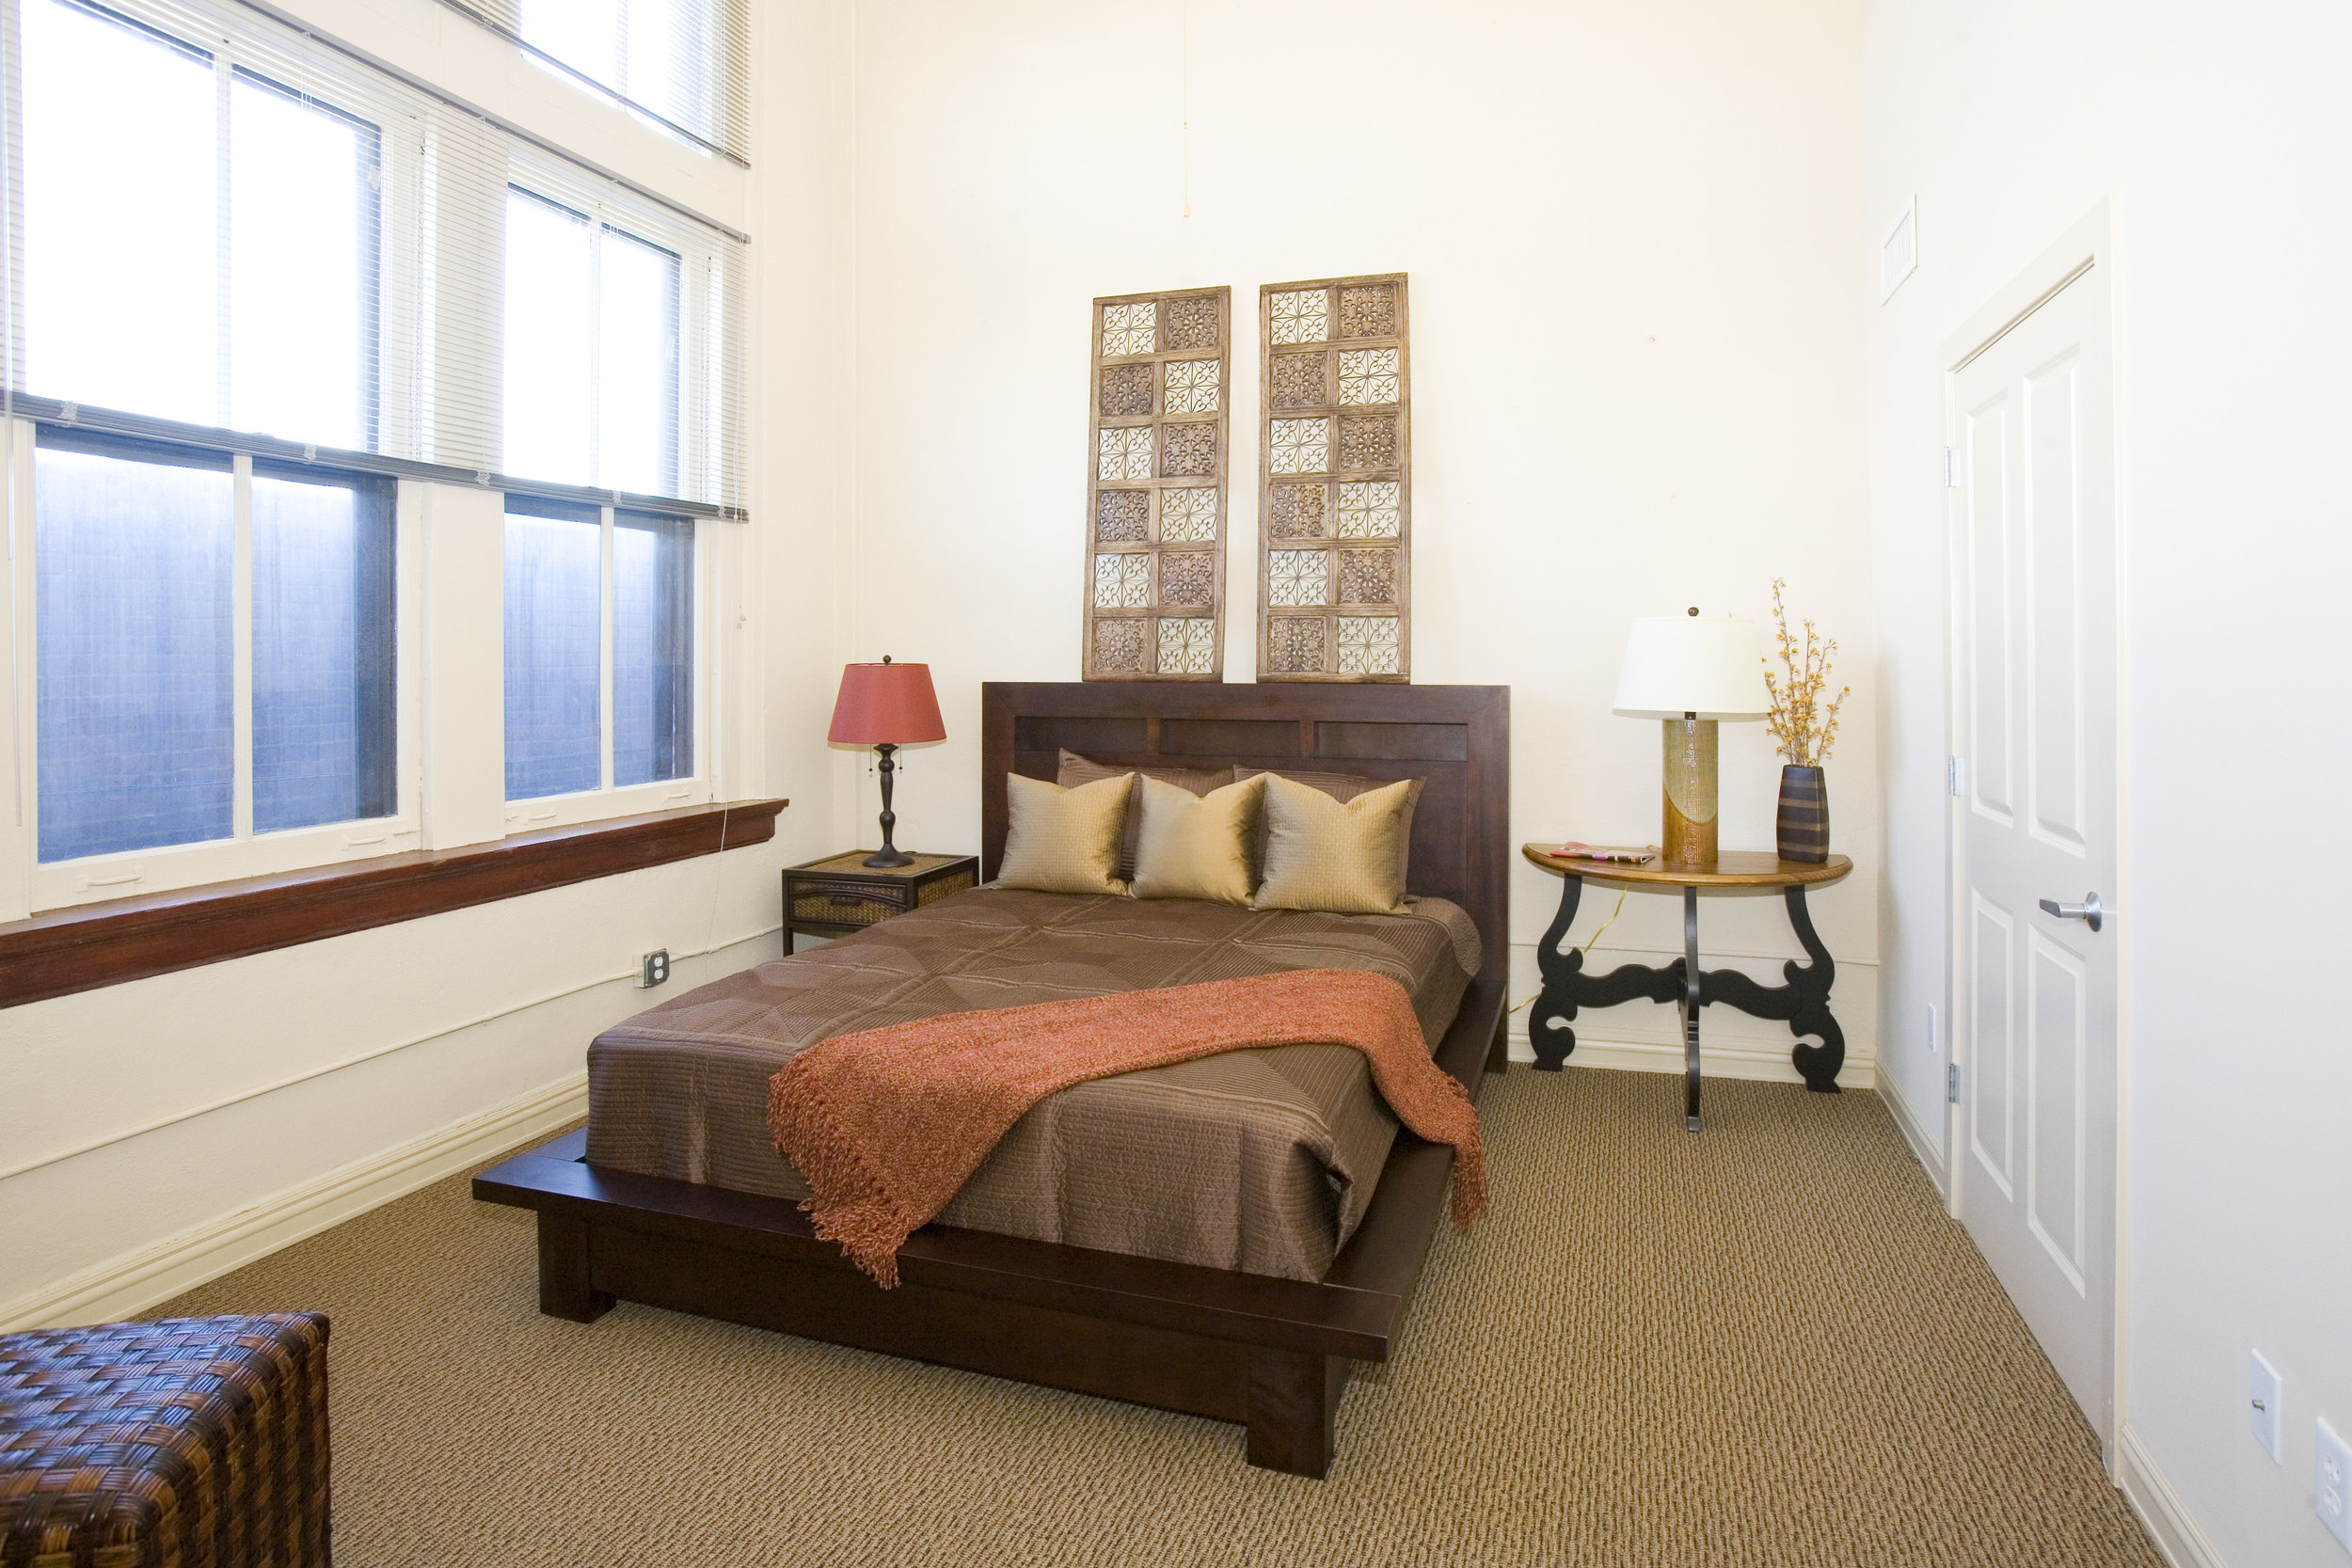 River-Market-Lofts-Bedroom-HDS-Architecture.jpg